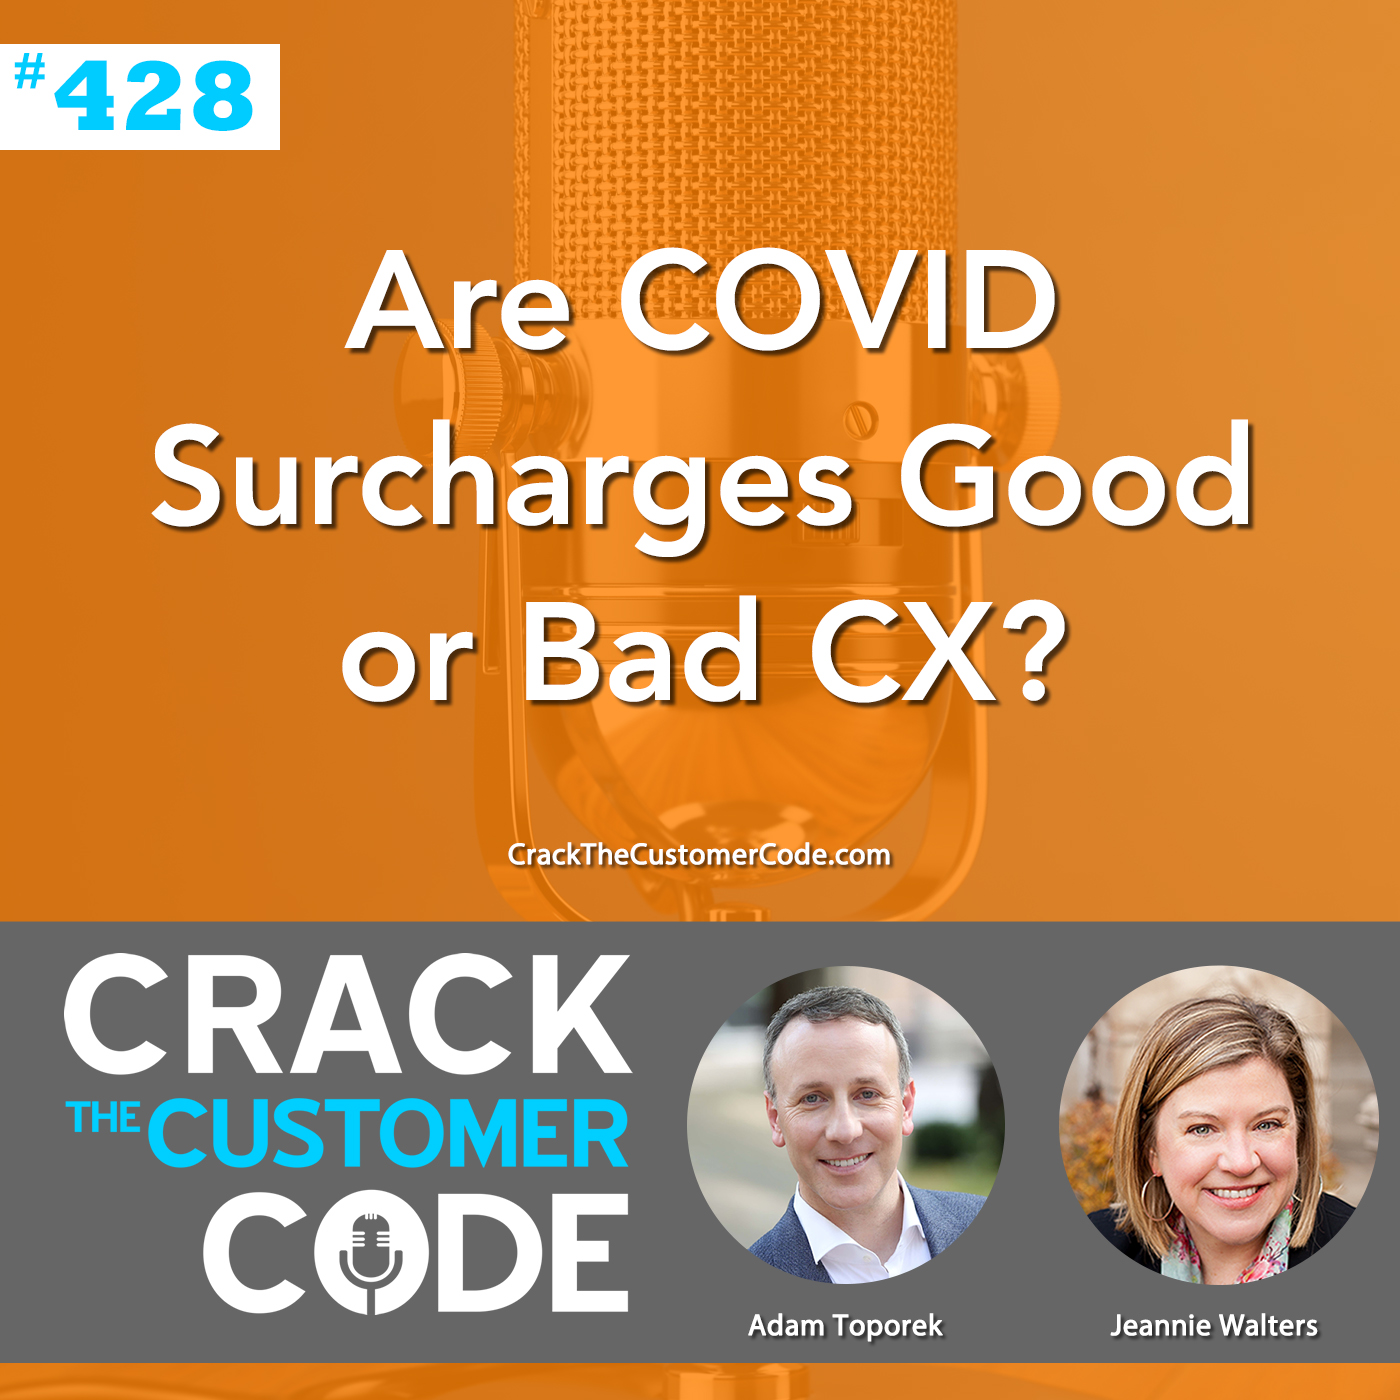 428: Are COVID Surcharges Good or Bad CX?